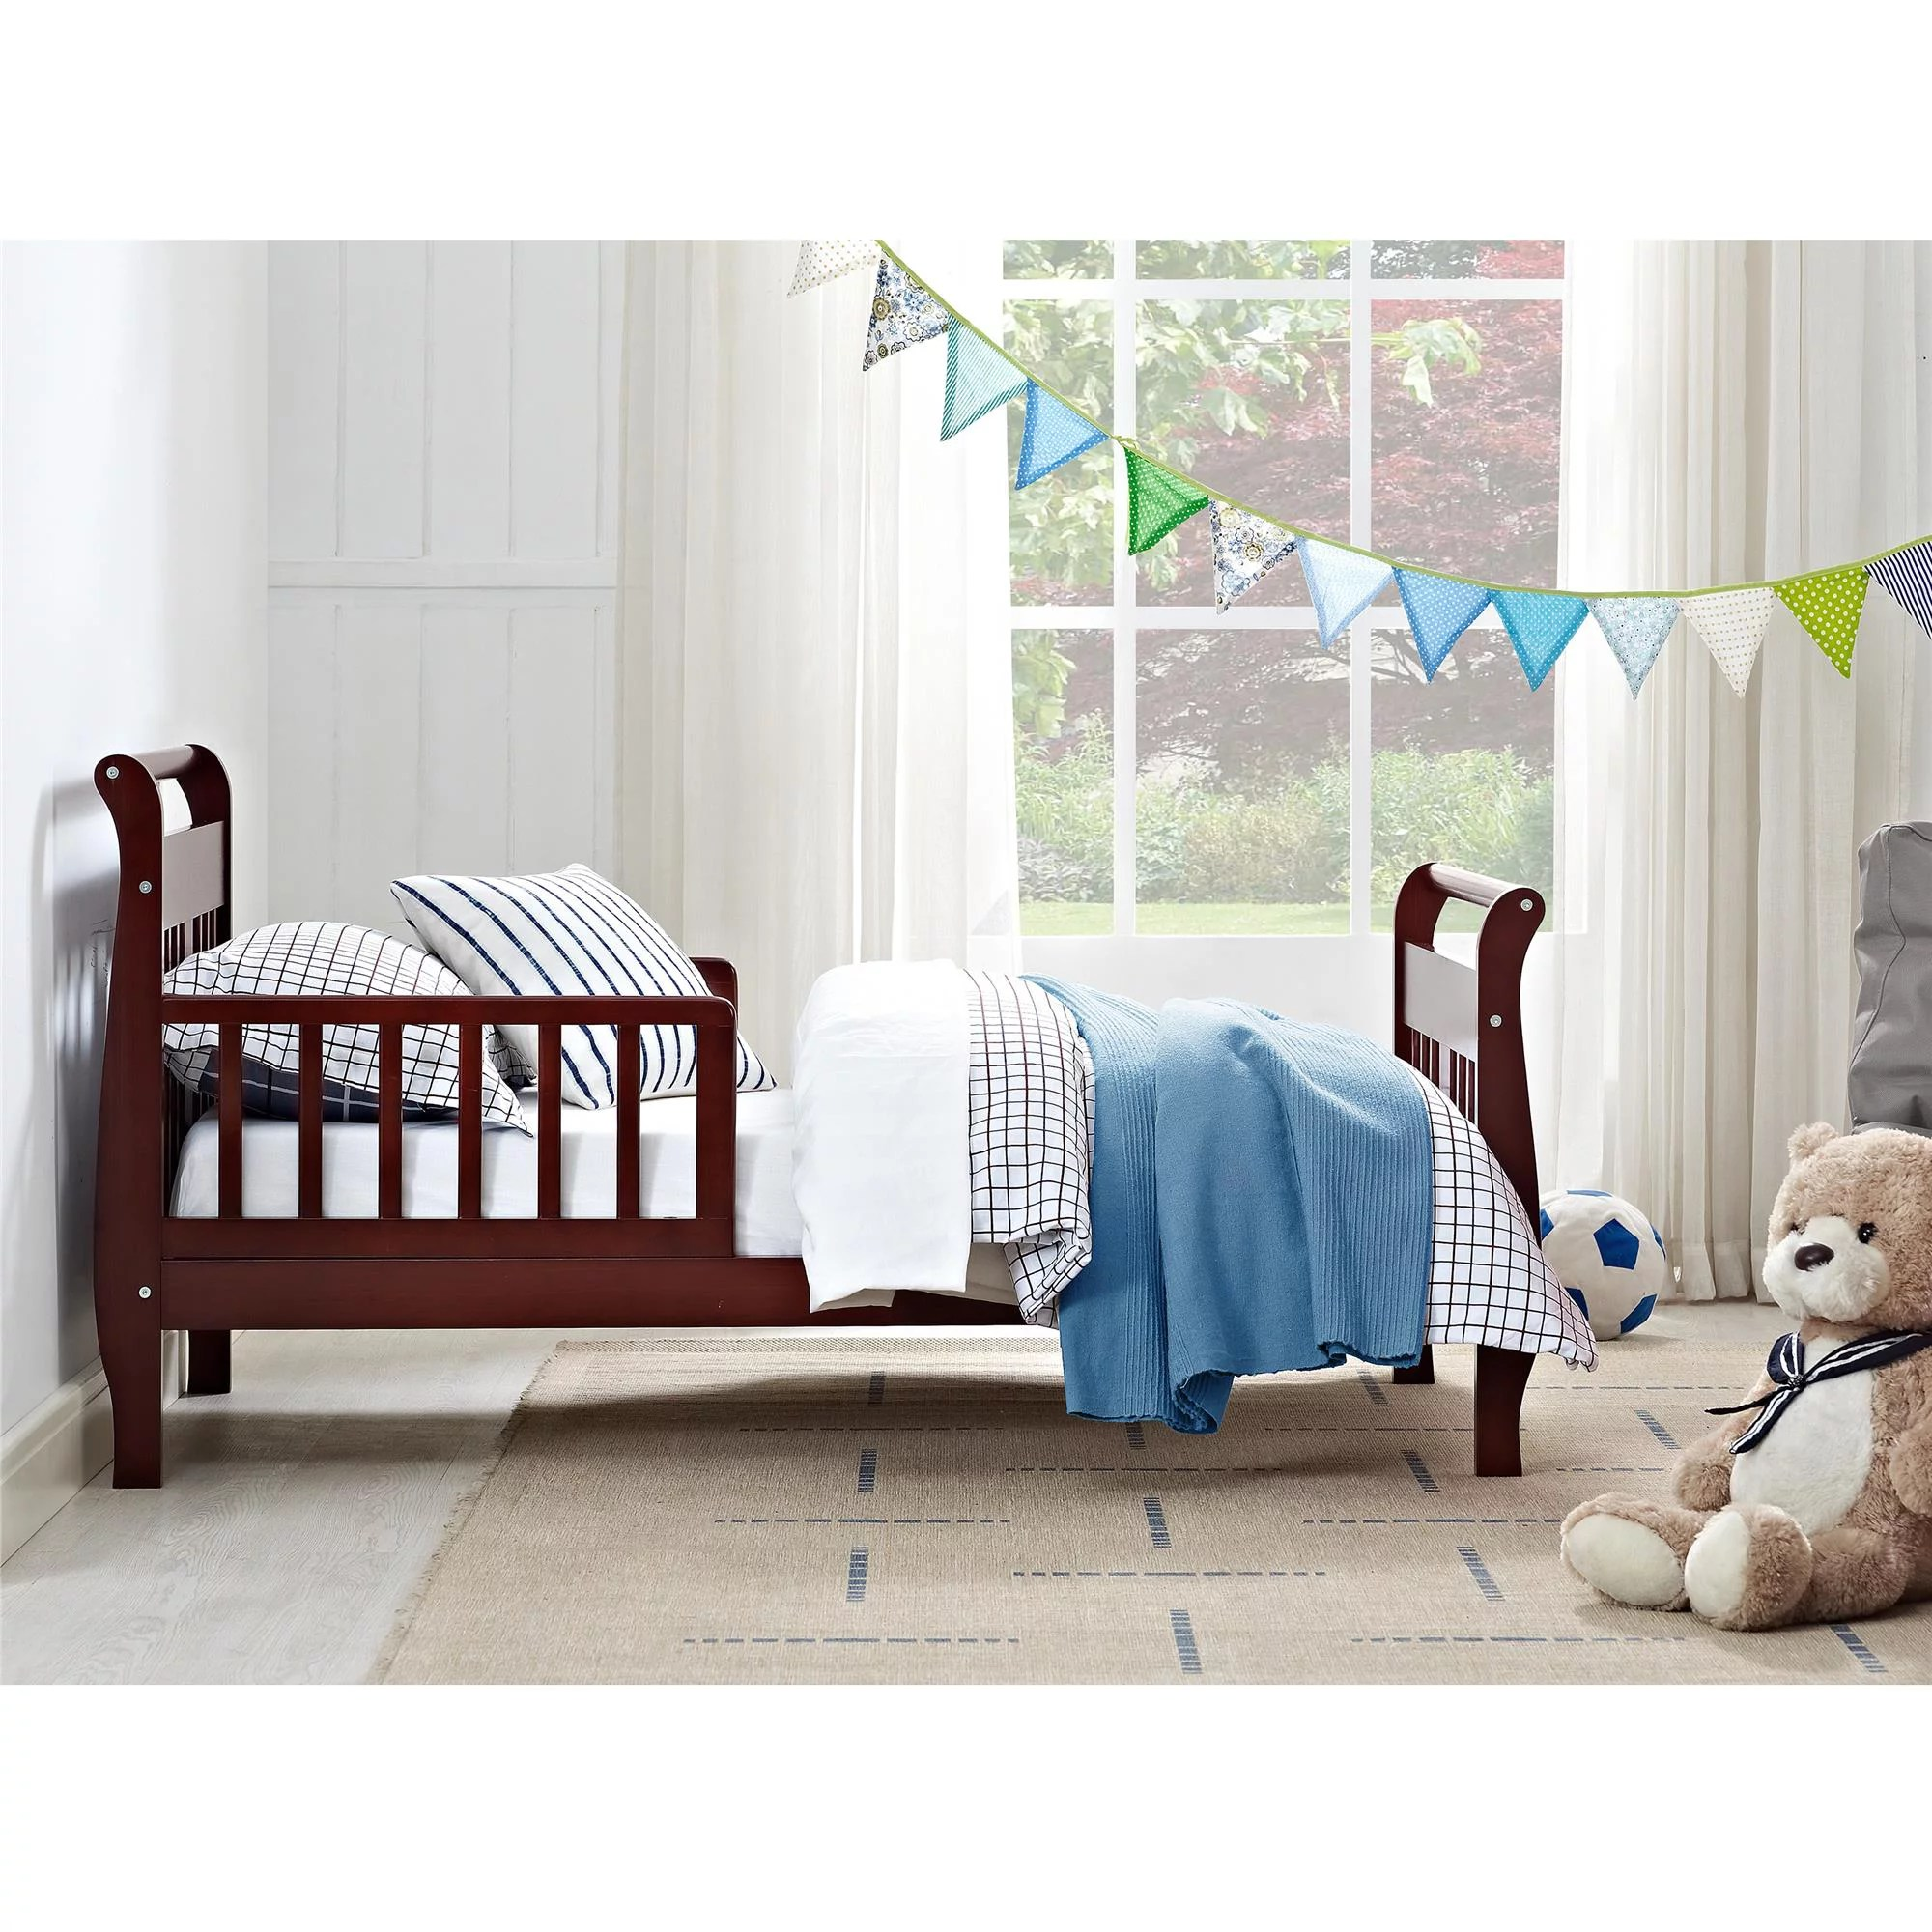 Baby Relax Toddler Bed Baby Relax Sleigh Wood Toddler Bed With Safety Rails